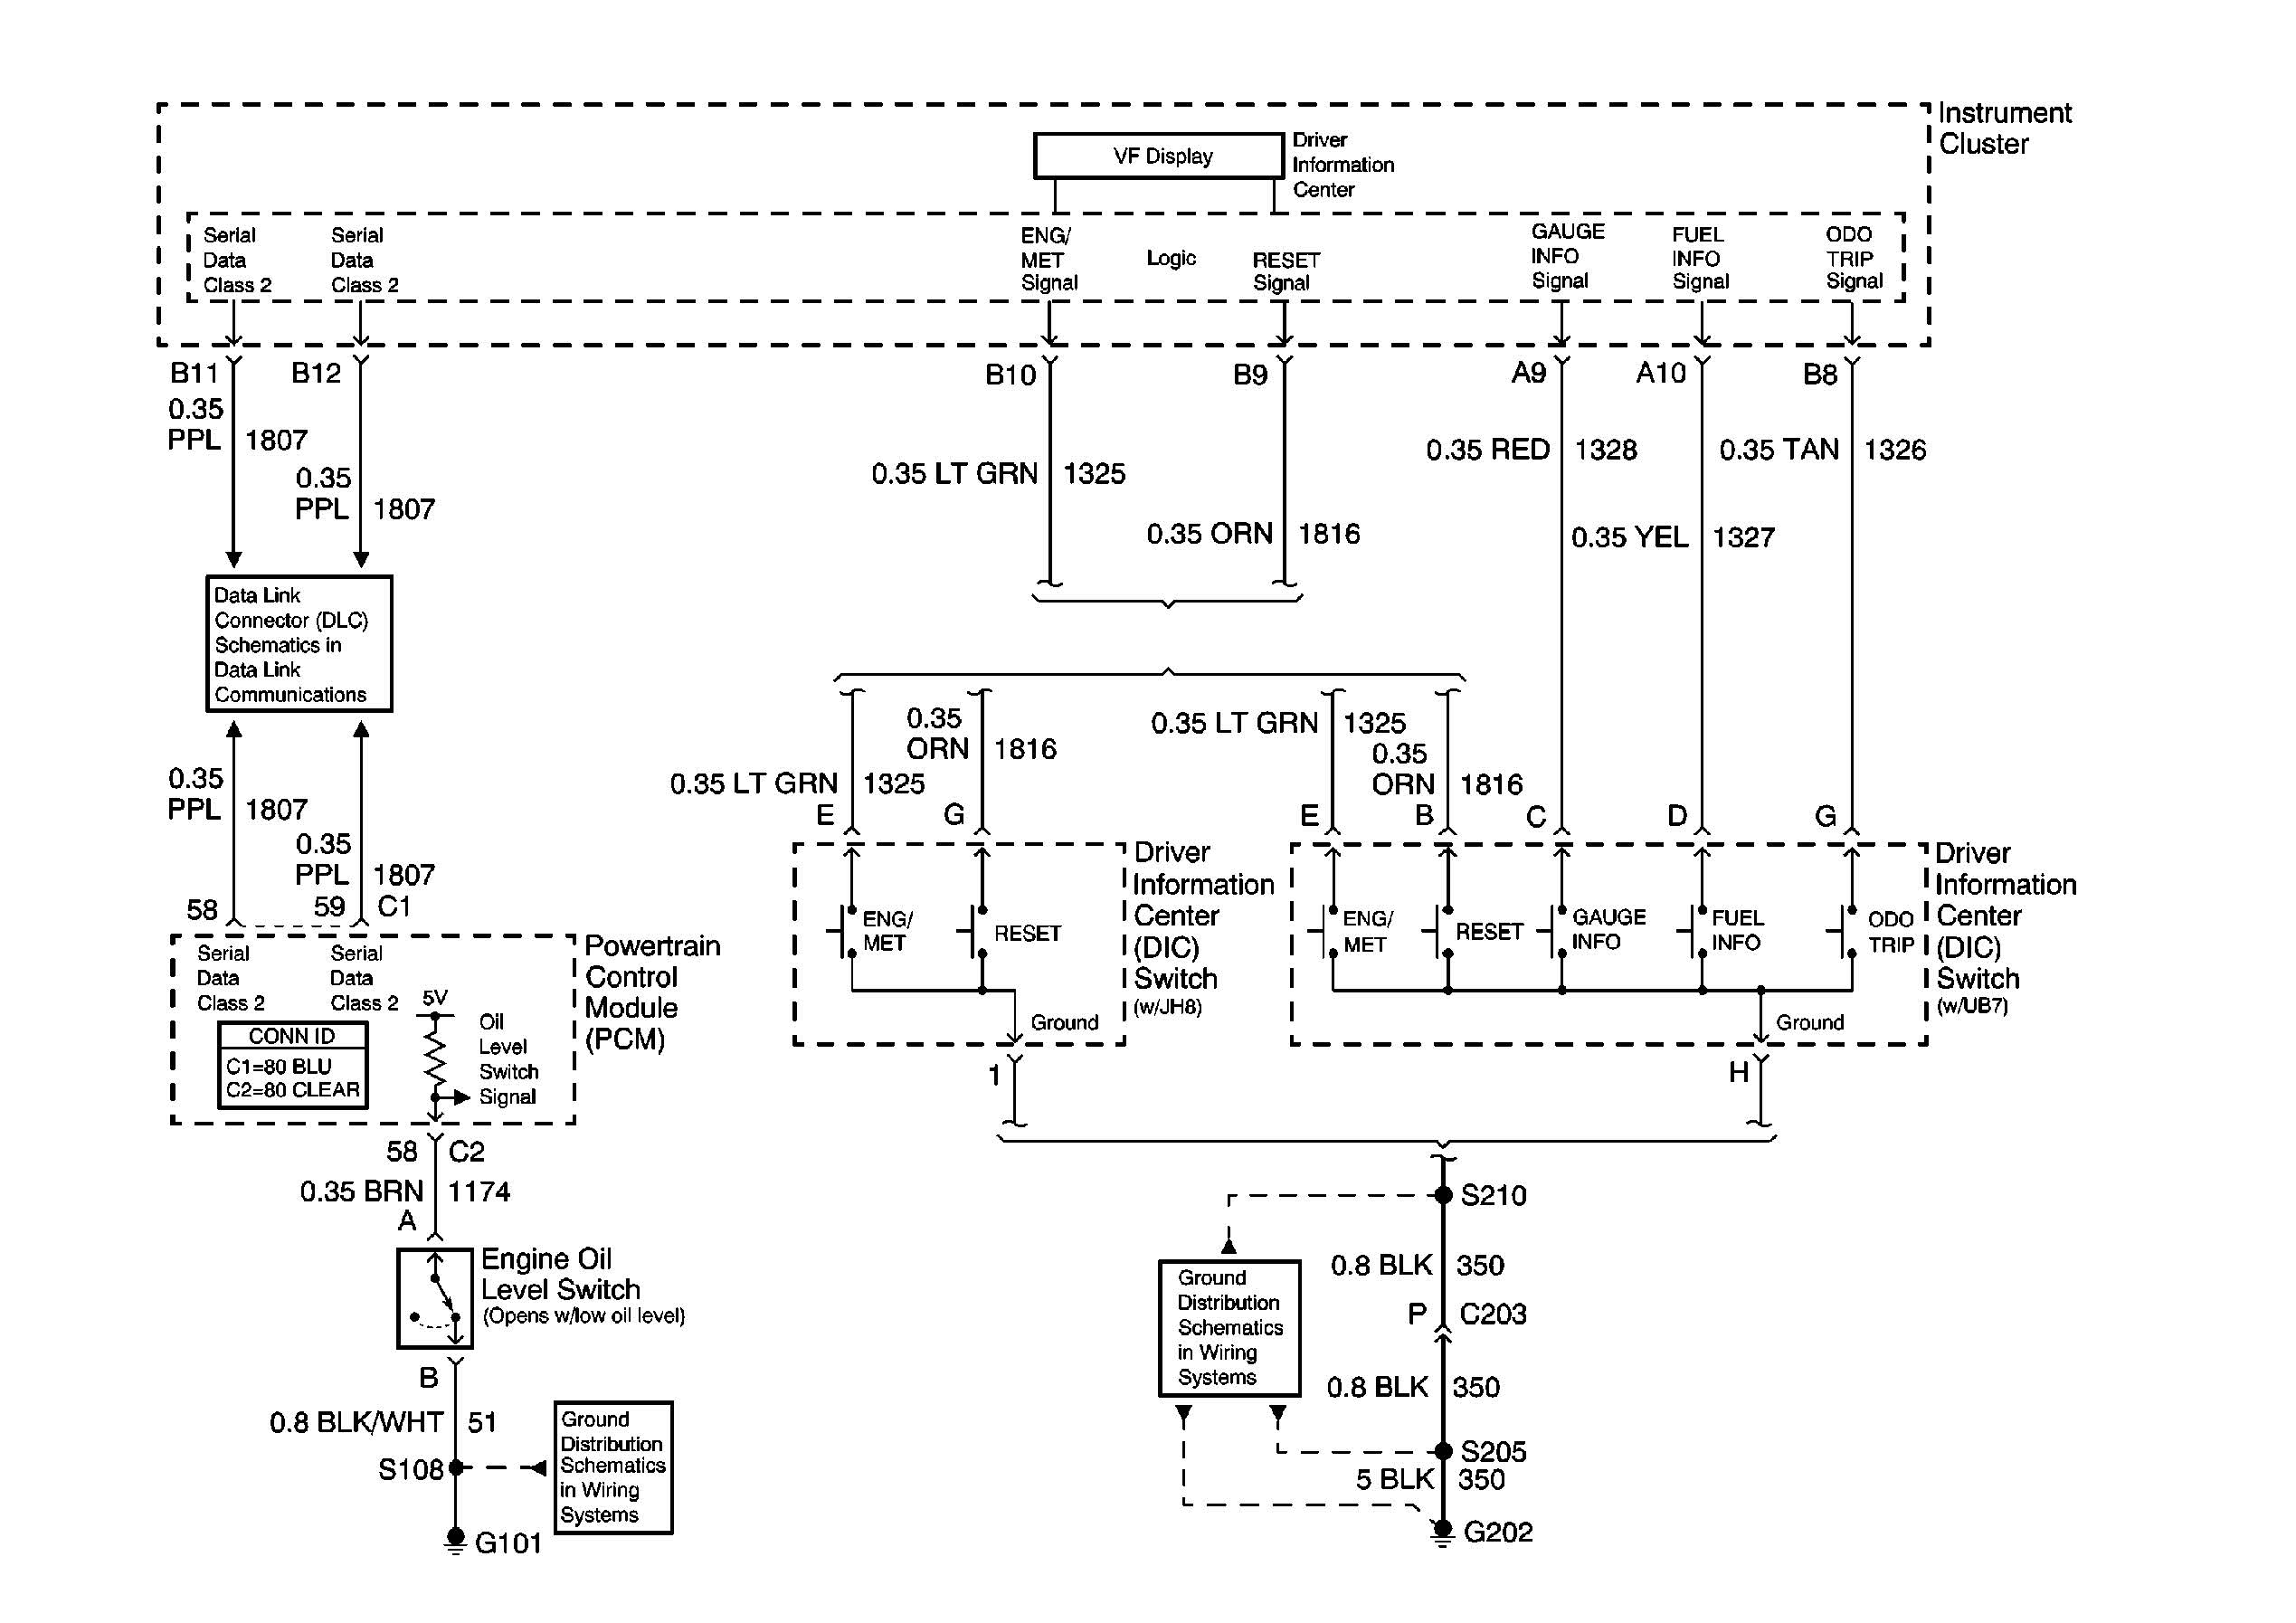 2014-12-02_014954_2000-park-ave-driver_information_center_wiring  Buick Park Avenue Radio Wiring Diagrams on